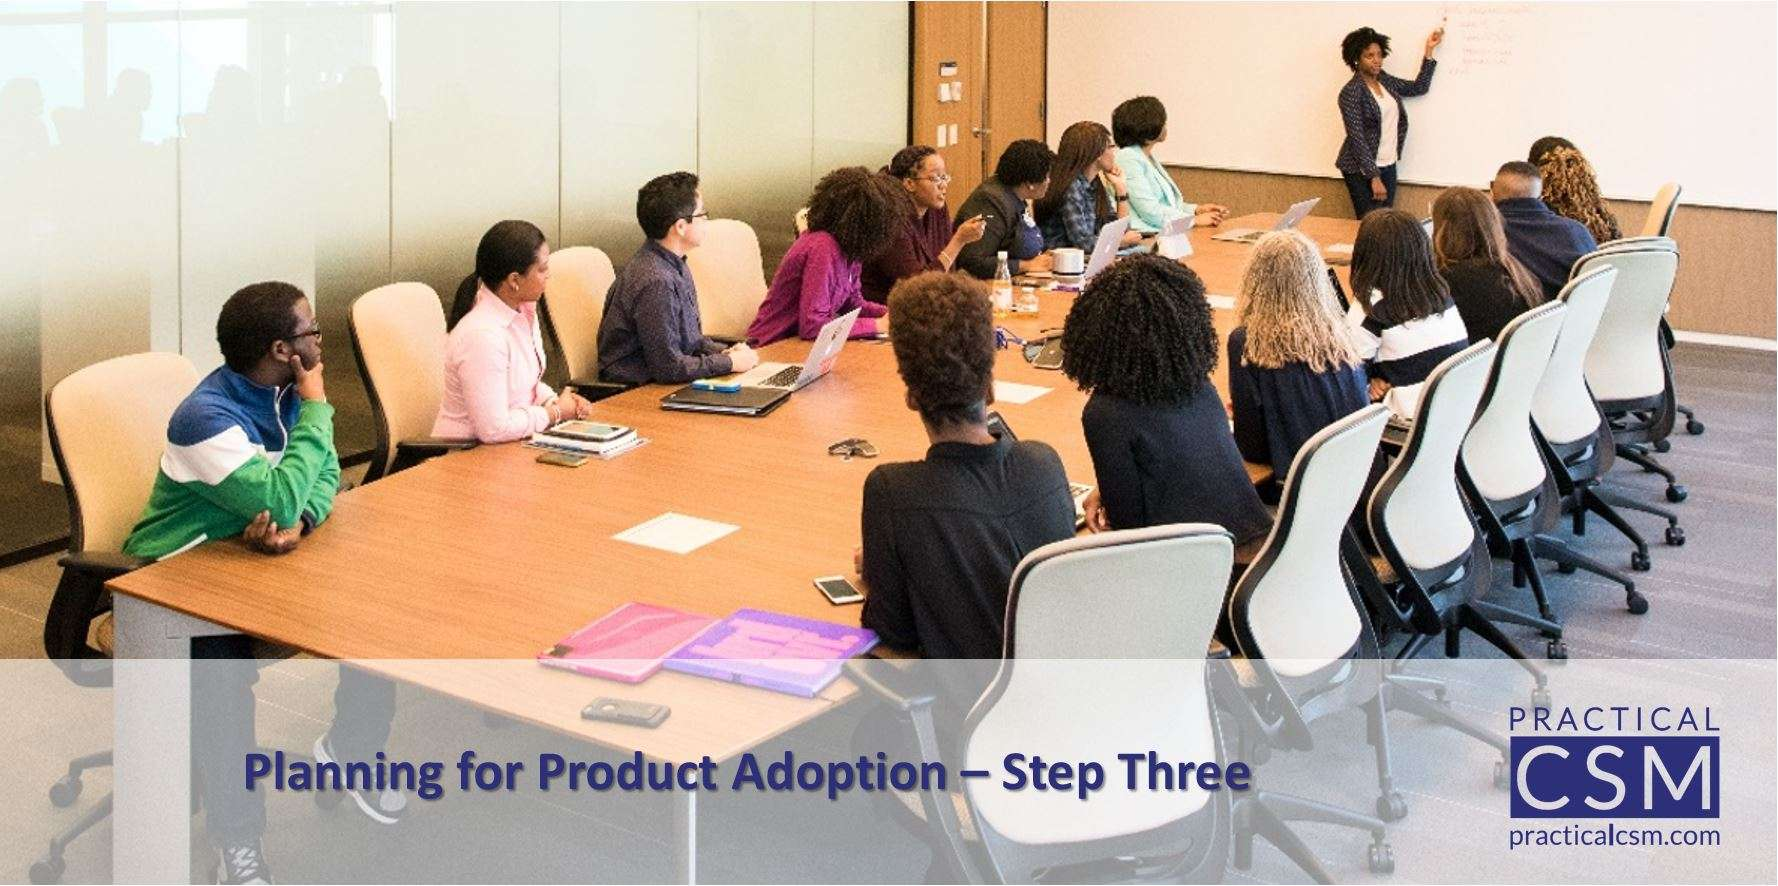 Planning for Product Adoption – Step Three